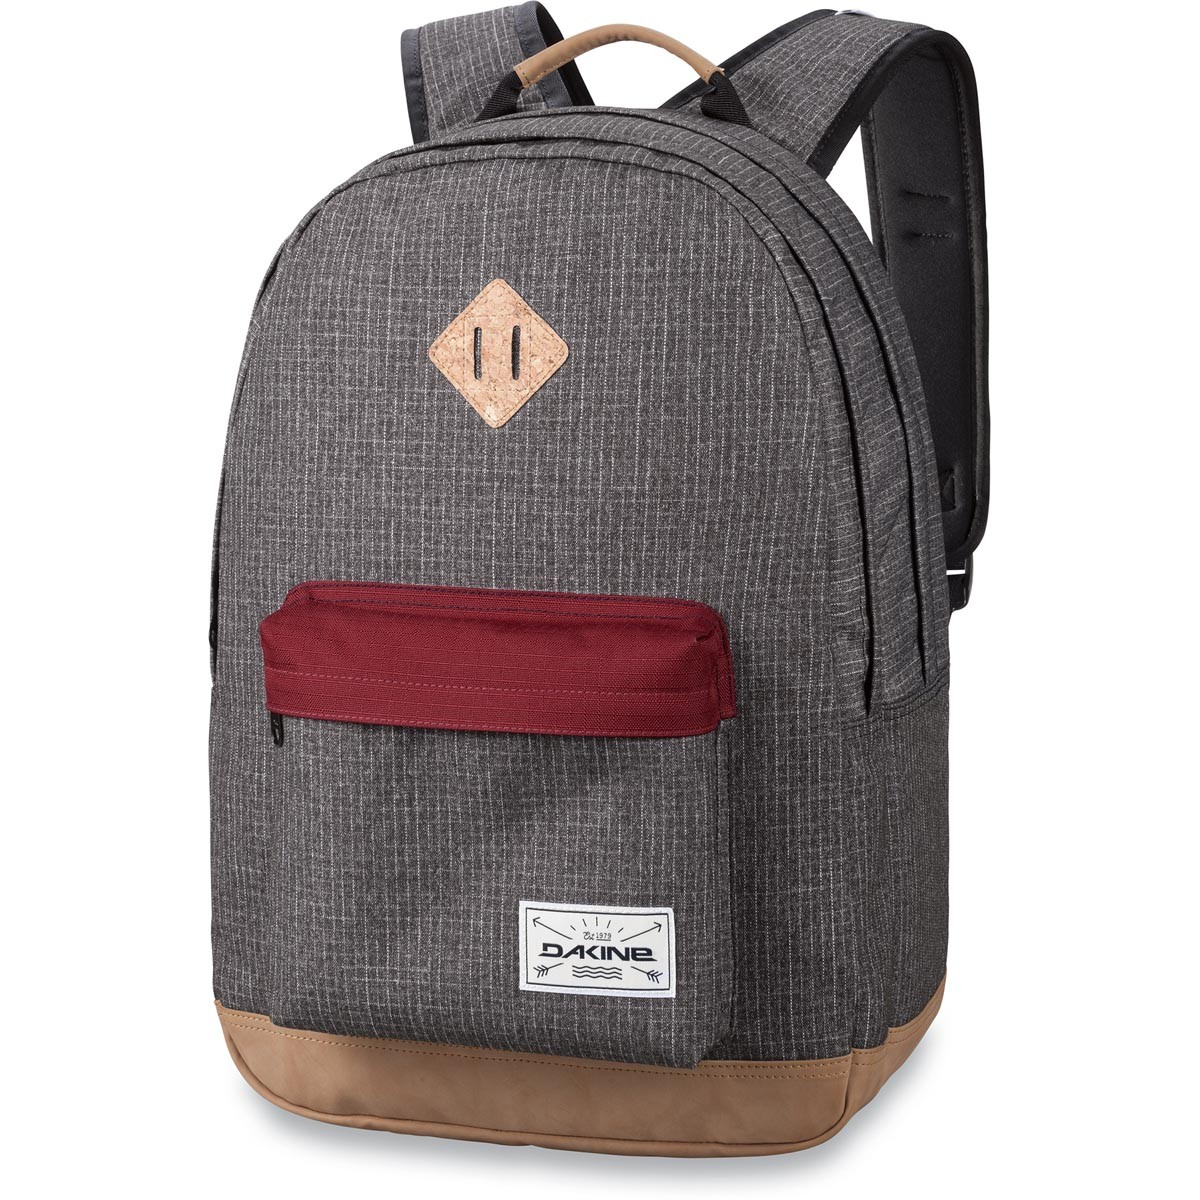 f5cfa8727b7 Dakine Detail 27L Backpack Willamette | Dakine Shop